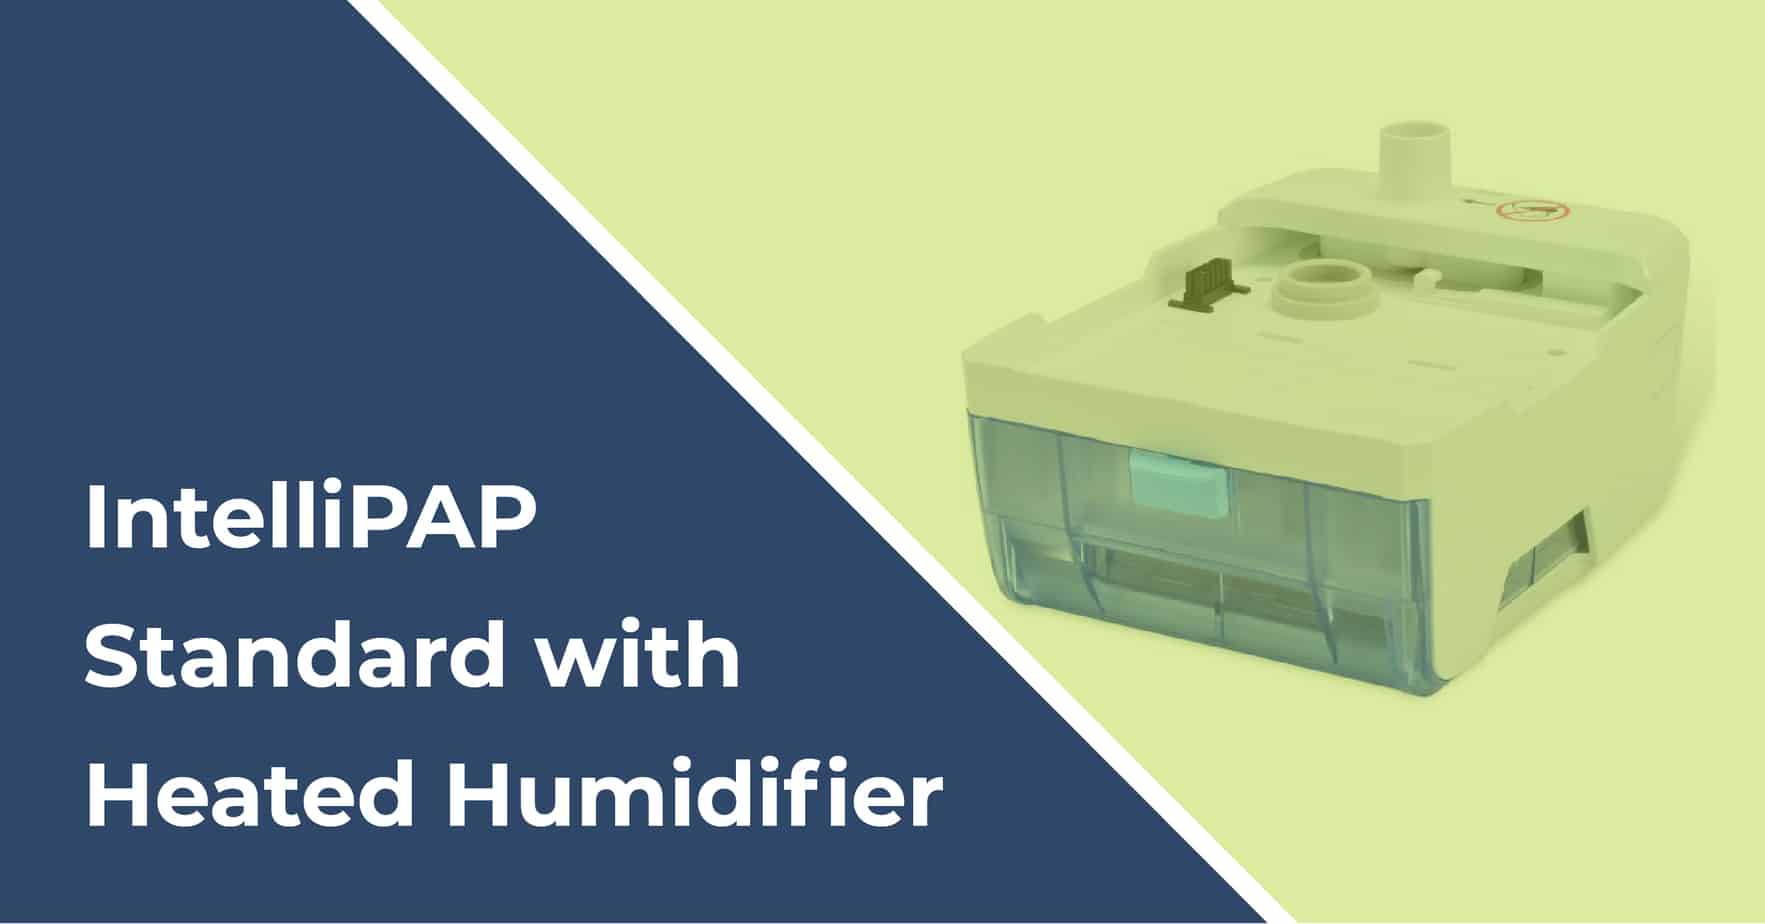 intellipap standard with heated humidifier